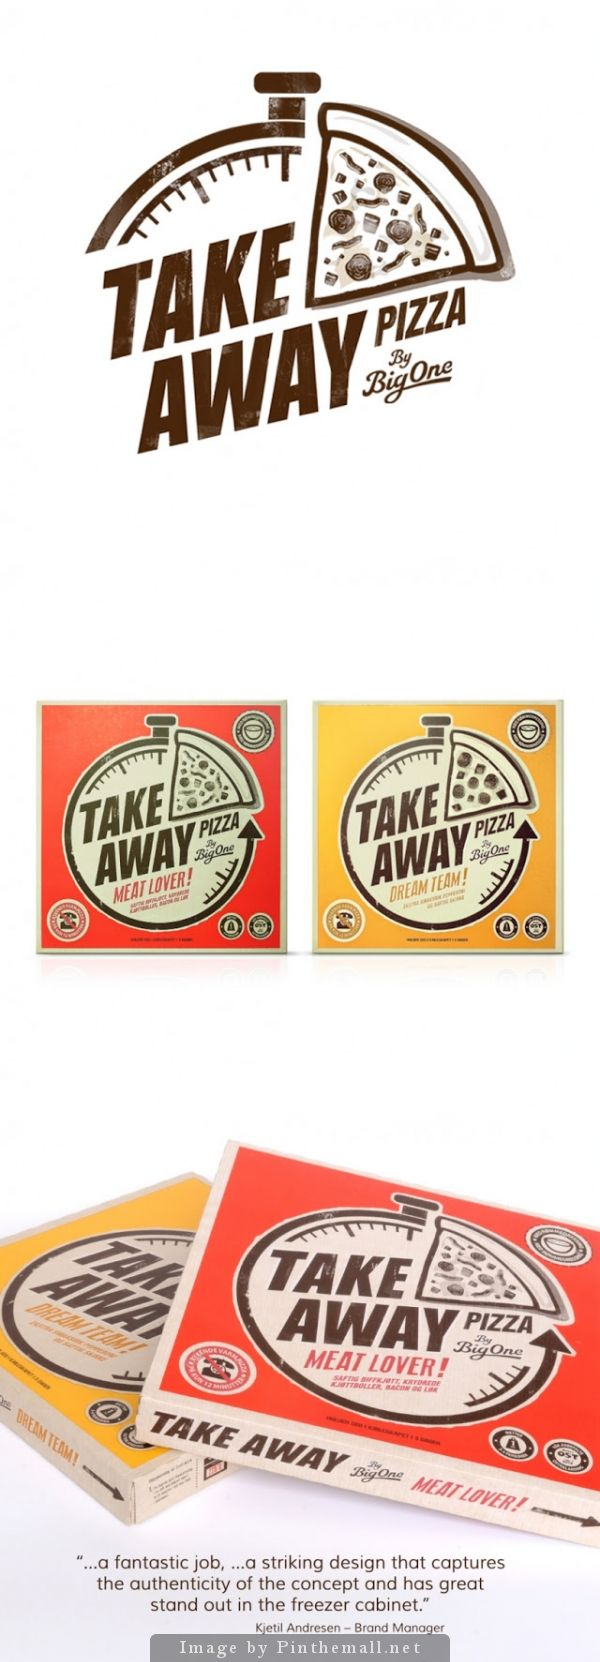 Take Away by Big One Creative agency: Illumination Type of work: Commercial work Country: London, UK PD